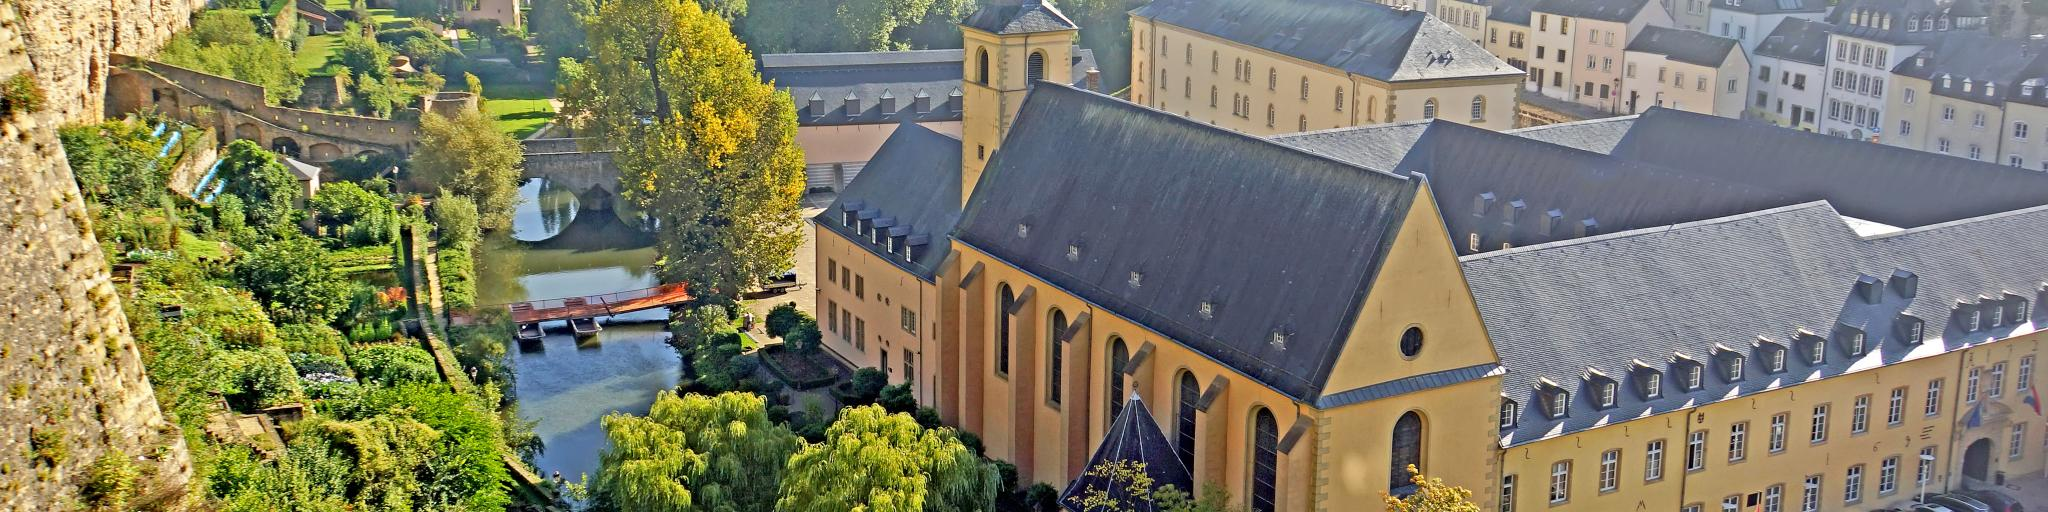 Neumünster Abbey and the old fortress walls in Luxembourg